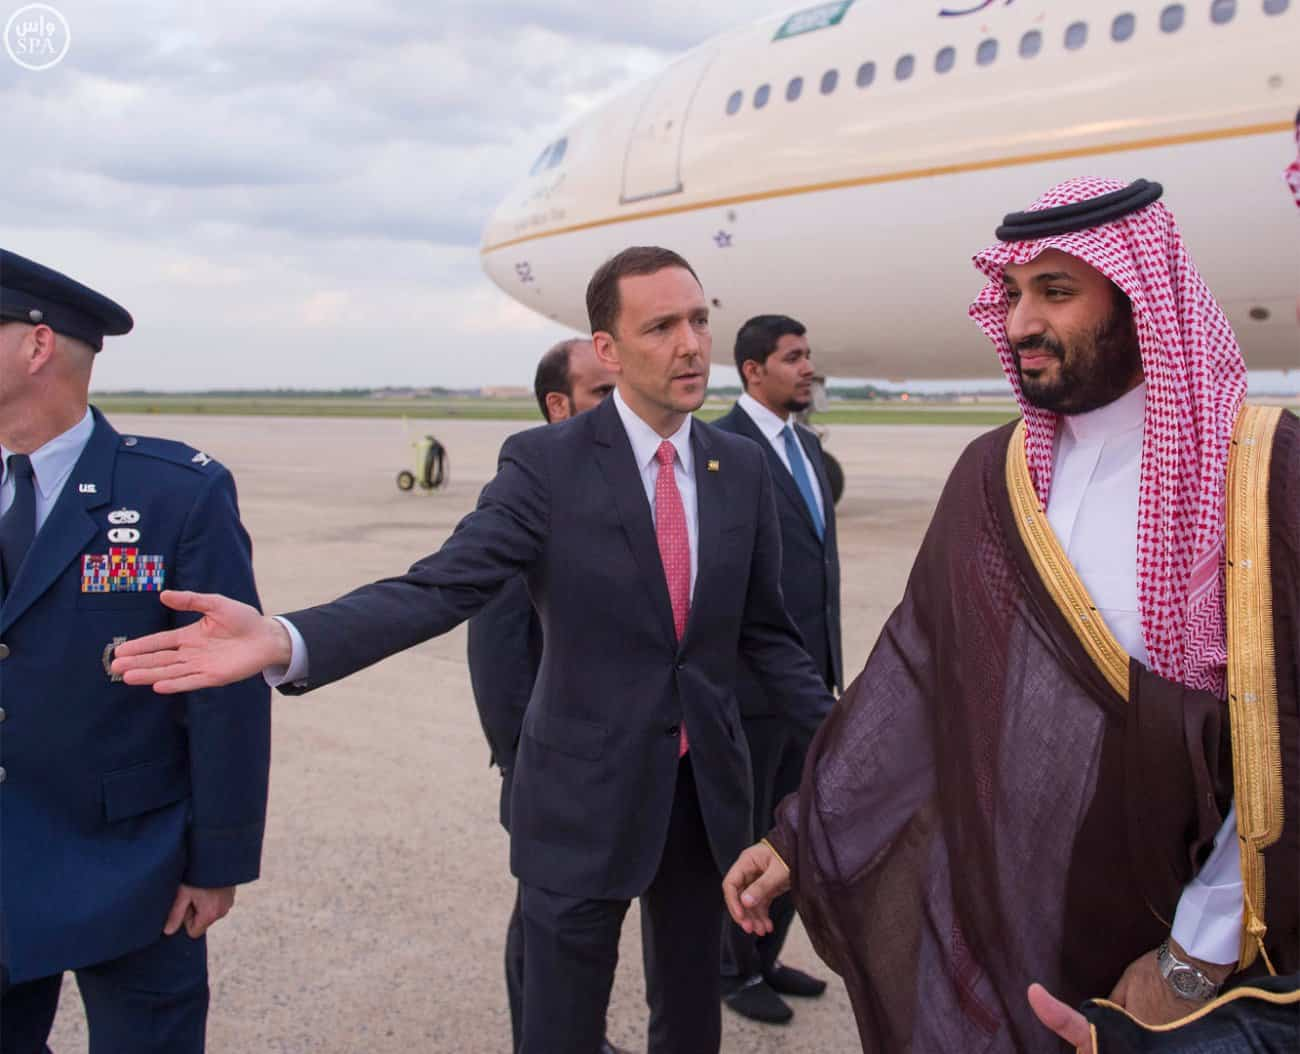 Prince Mohammed bin Salman arrives in US (Photo SPA)